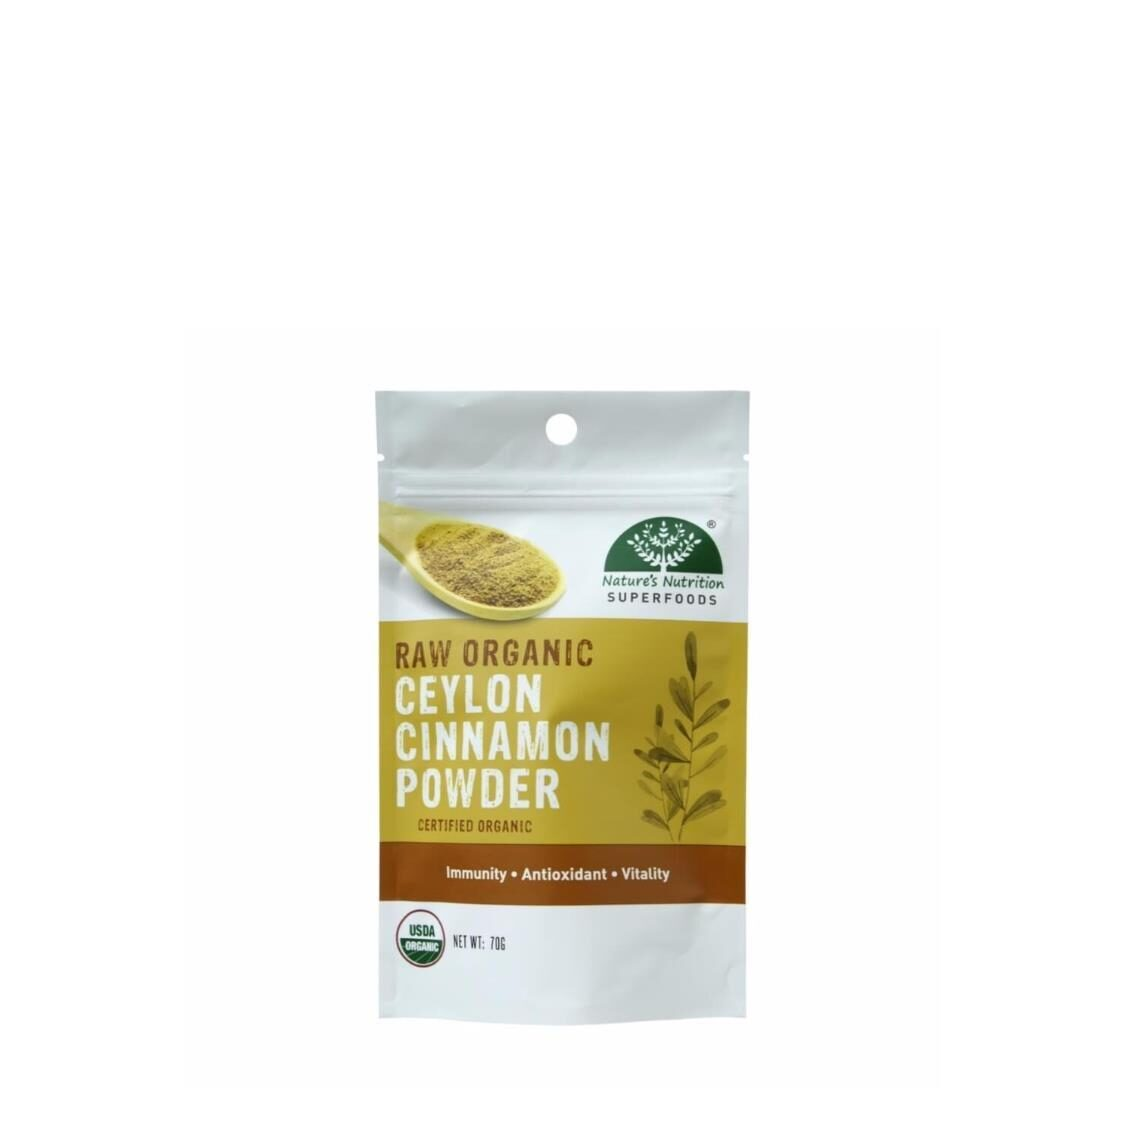 Natures Nutrition Organic Ceylon Cinnamon Powder 70g